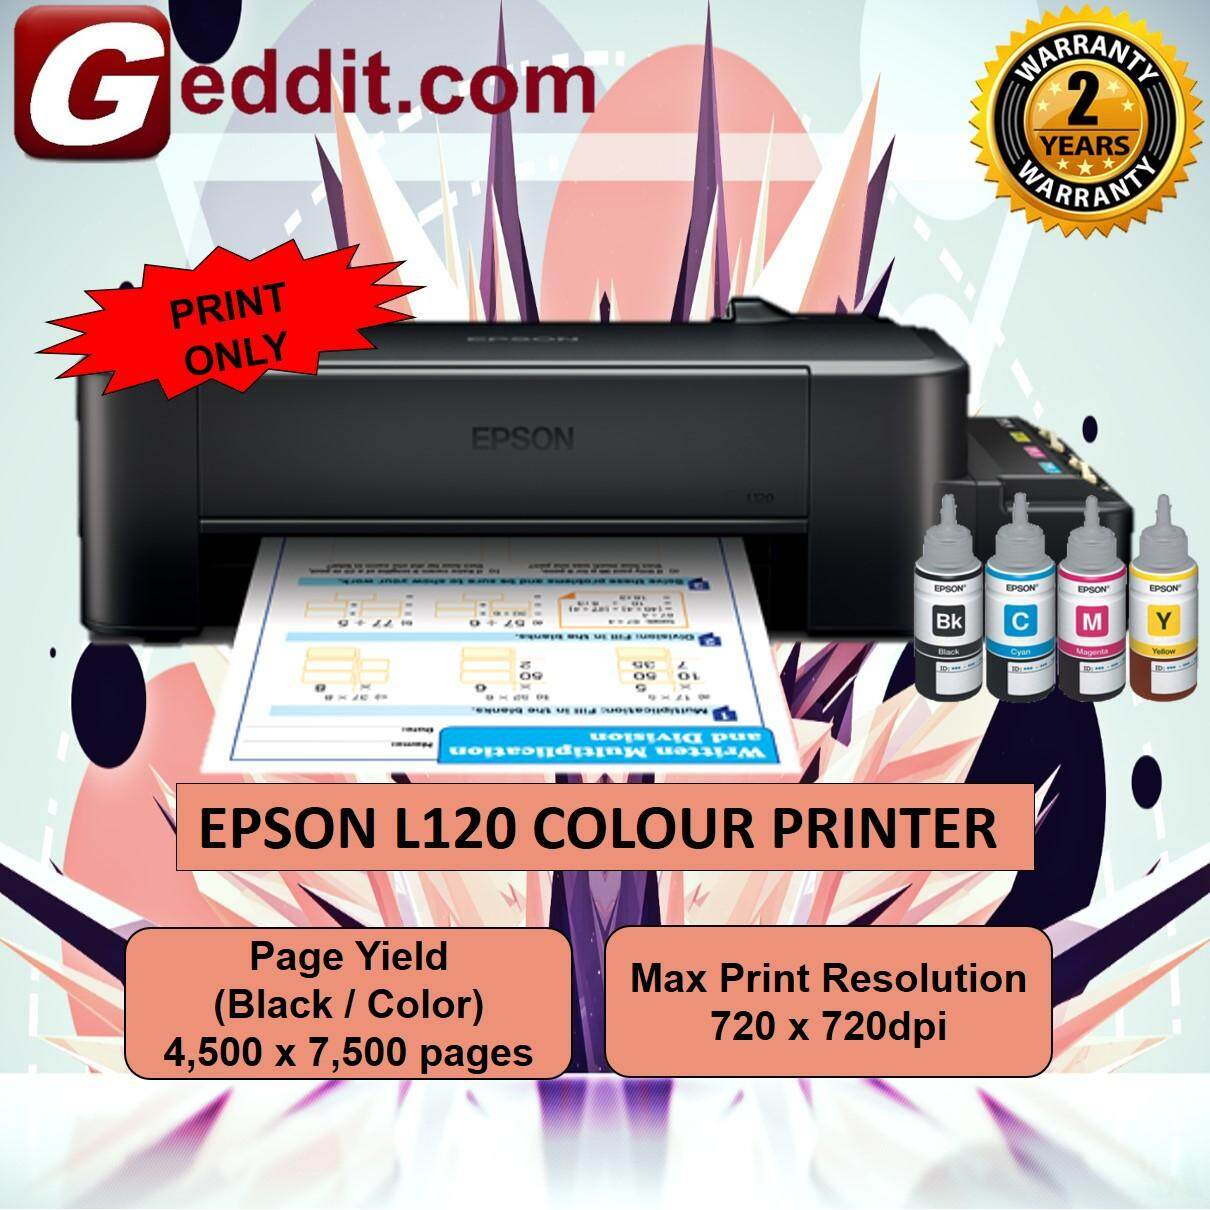 Epson L120 Colour Printer Black (High-yield ink bottles) - PRINT ONLY